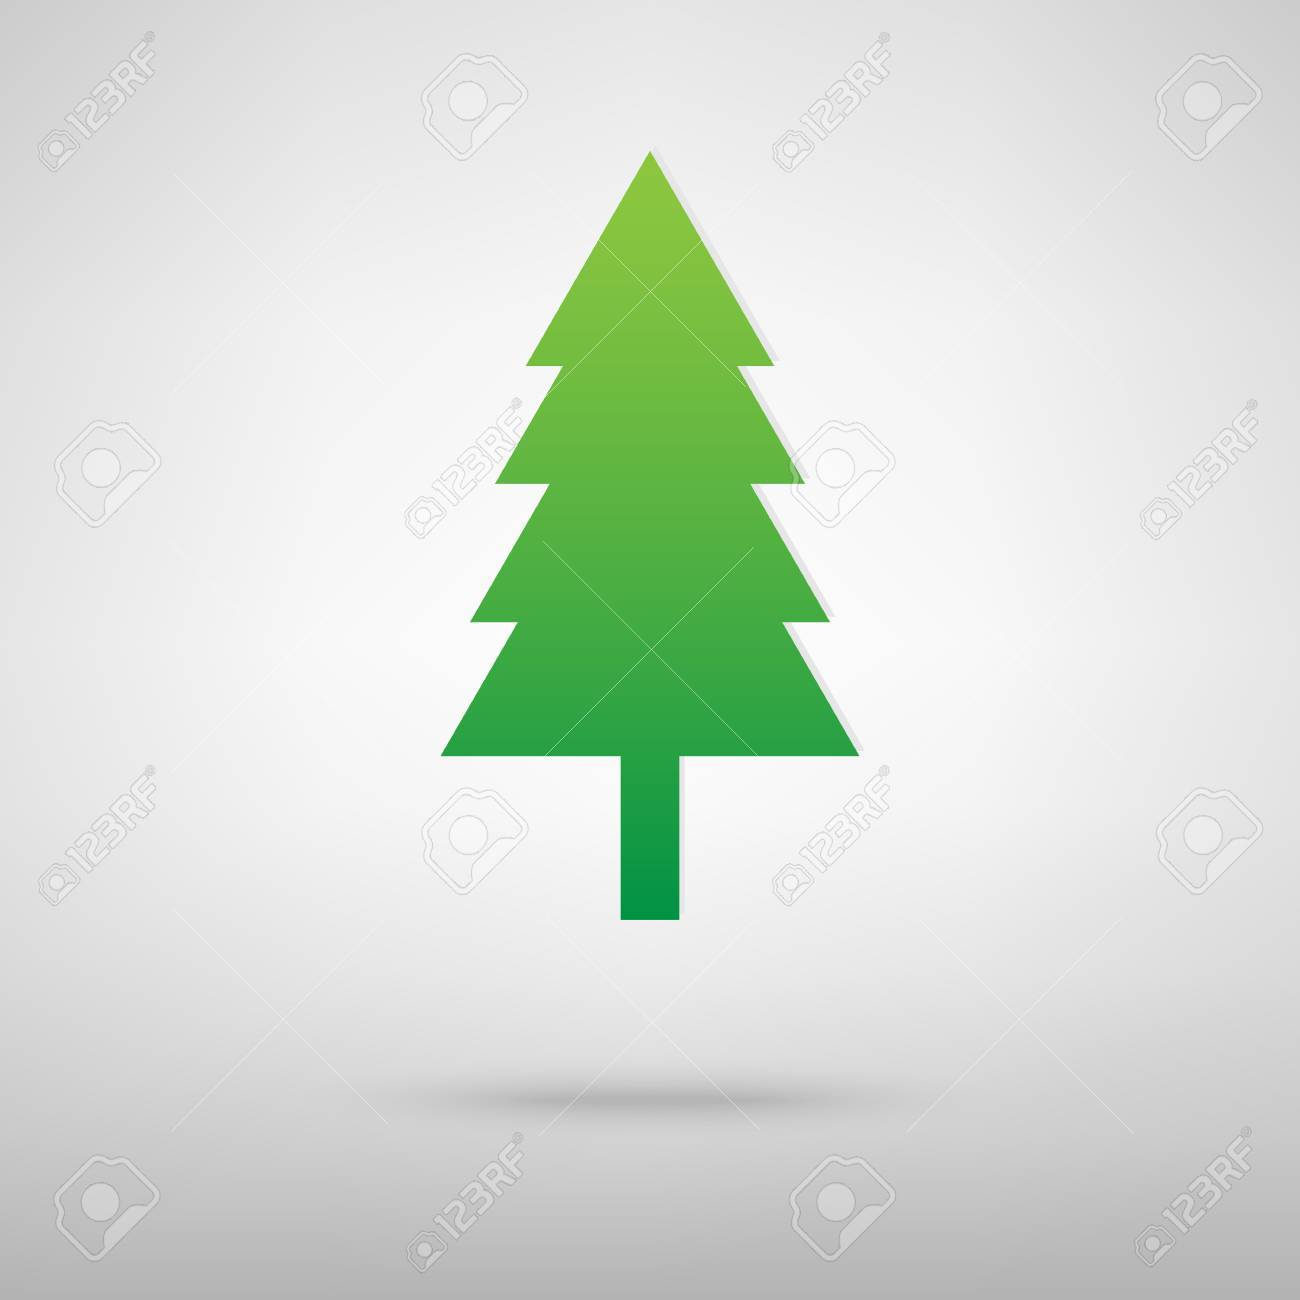 New year tree icon with shadow on gray background - 50761753